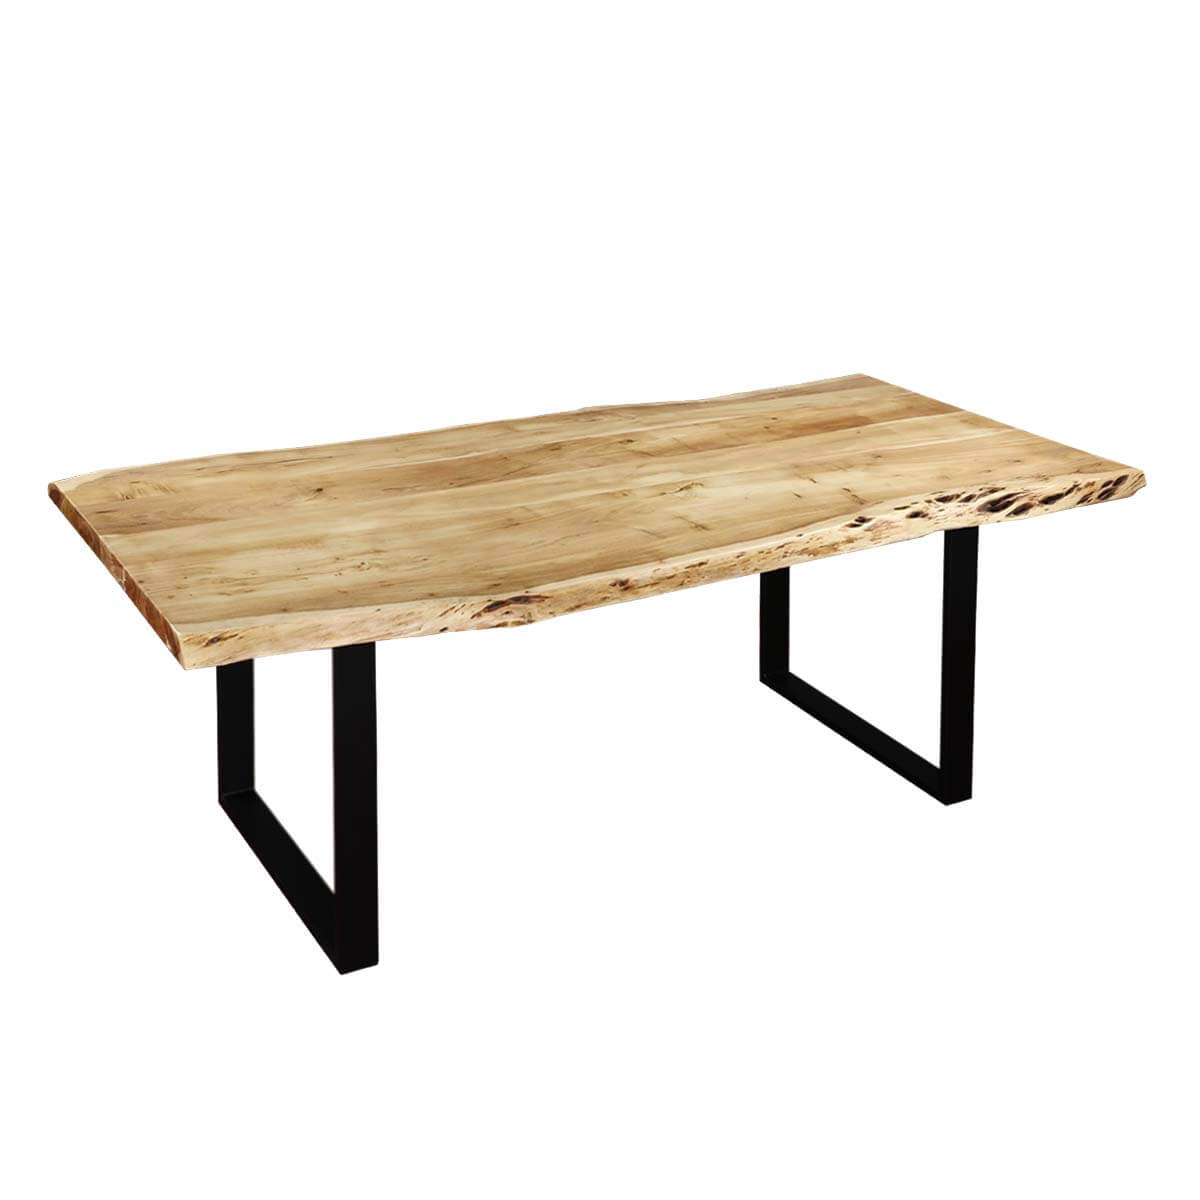 Acacia Dining Table Contemporary Acacia Wood And Iron Live Edge Dining Table